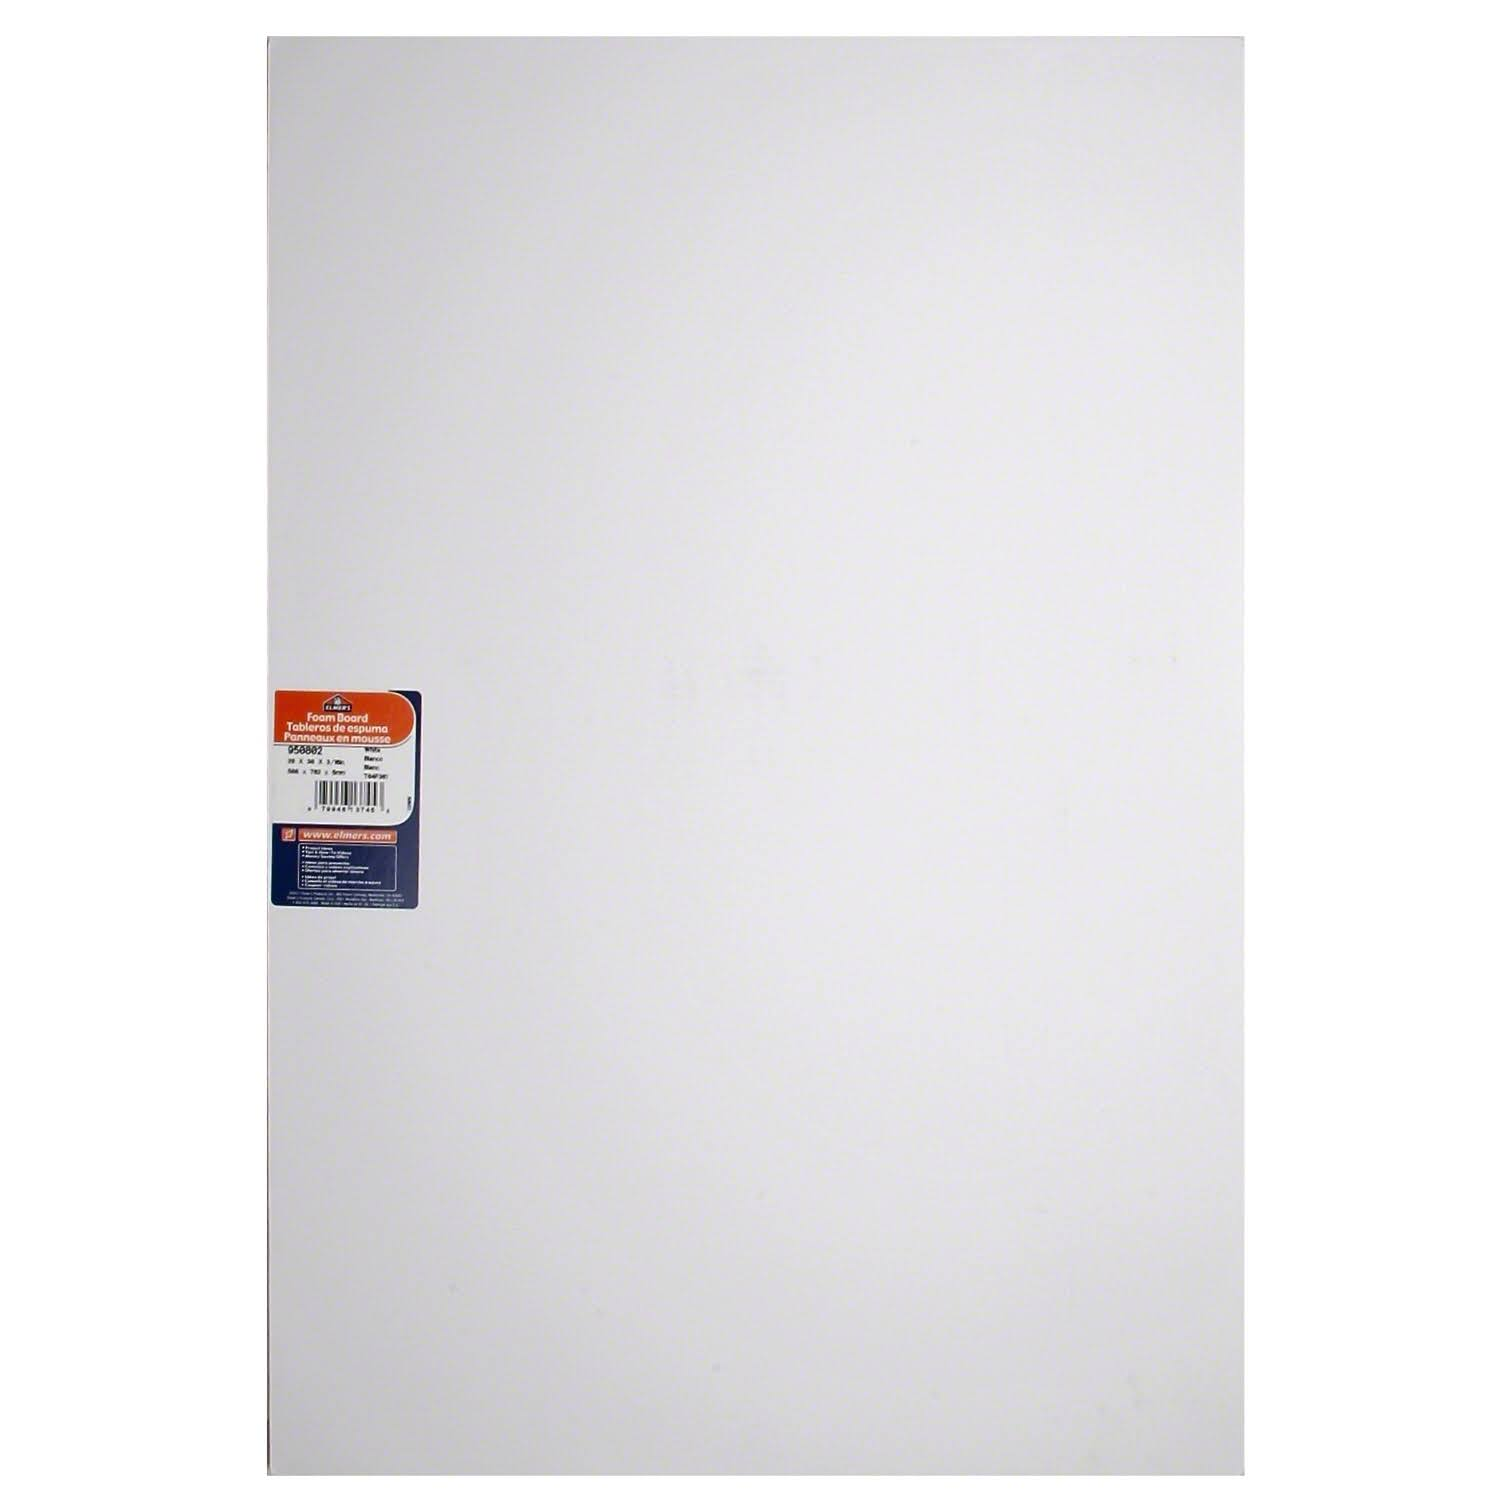 "Elmerft.s Products Inc Sturdy Foam Board - 0.19"" Thick, 20"" x 30"", White"